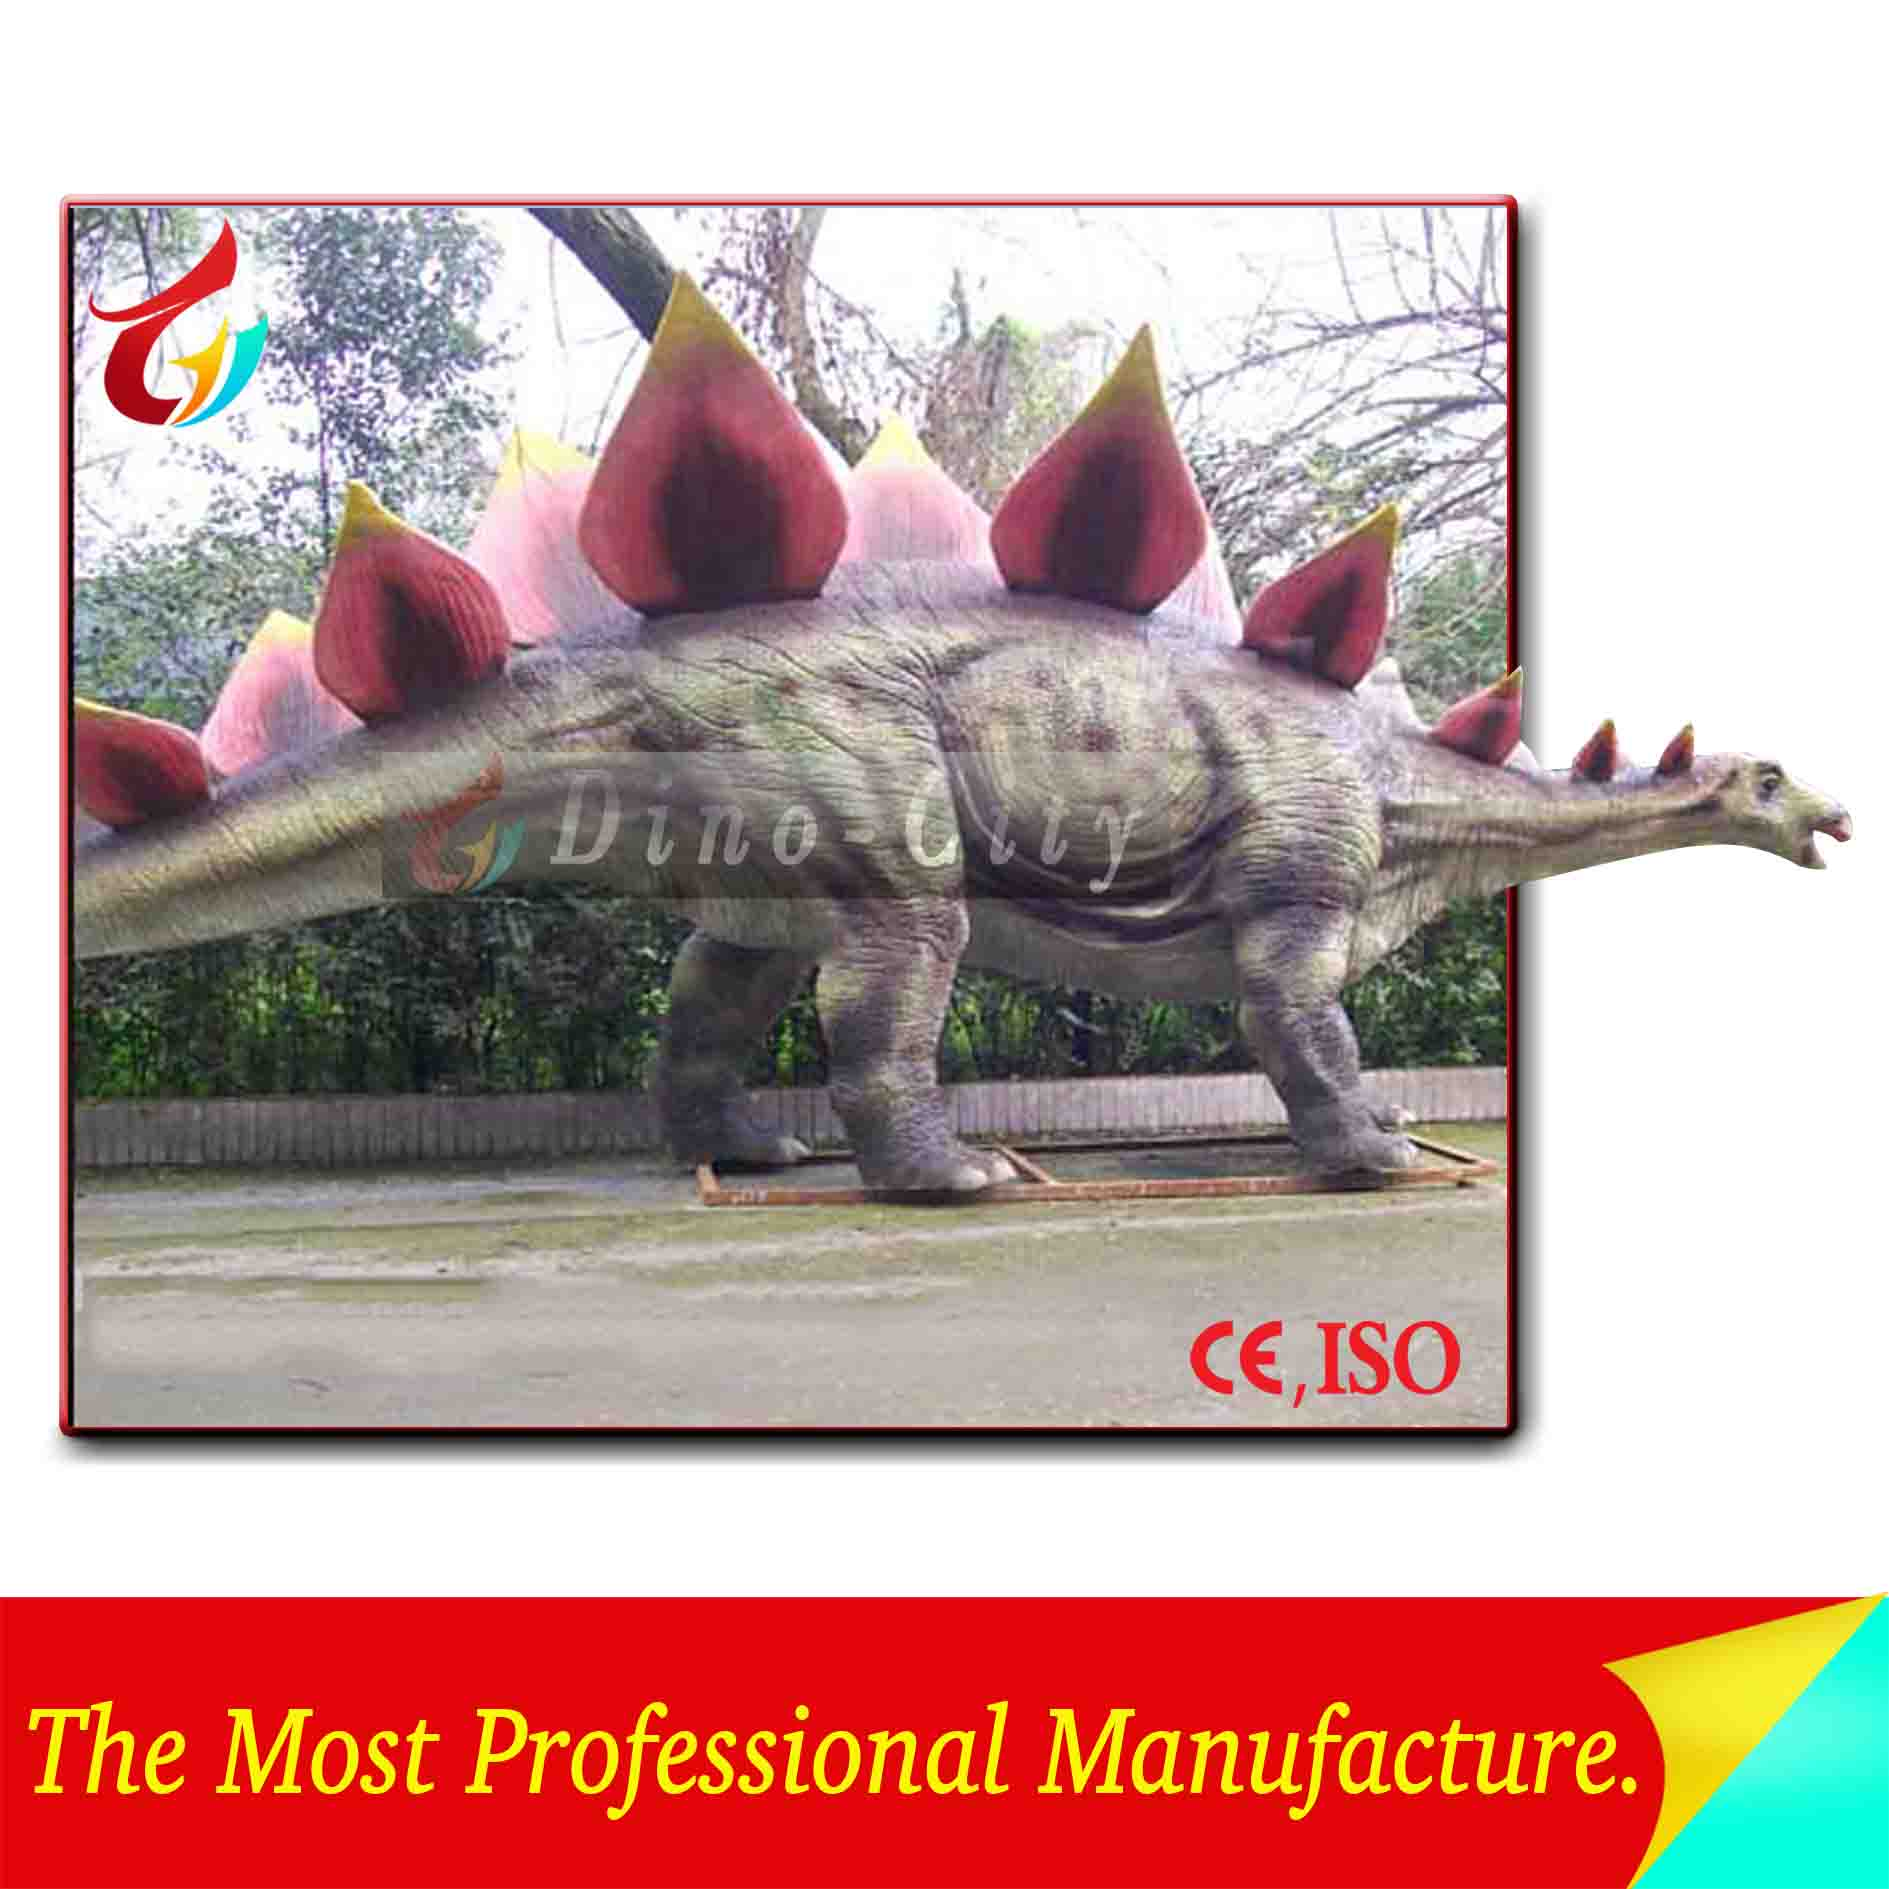 Animal Playground Equipment of Life Size Remote Control Mechanical Dinosaurs